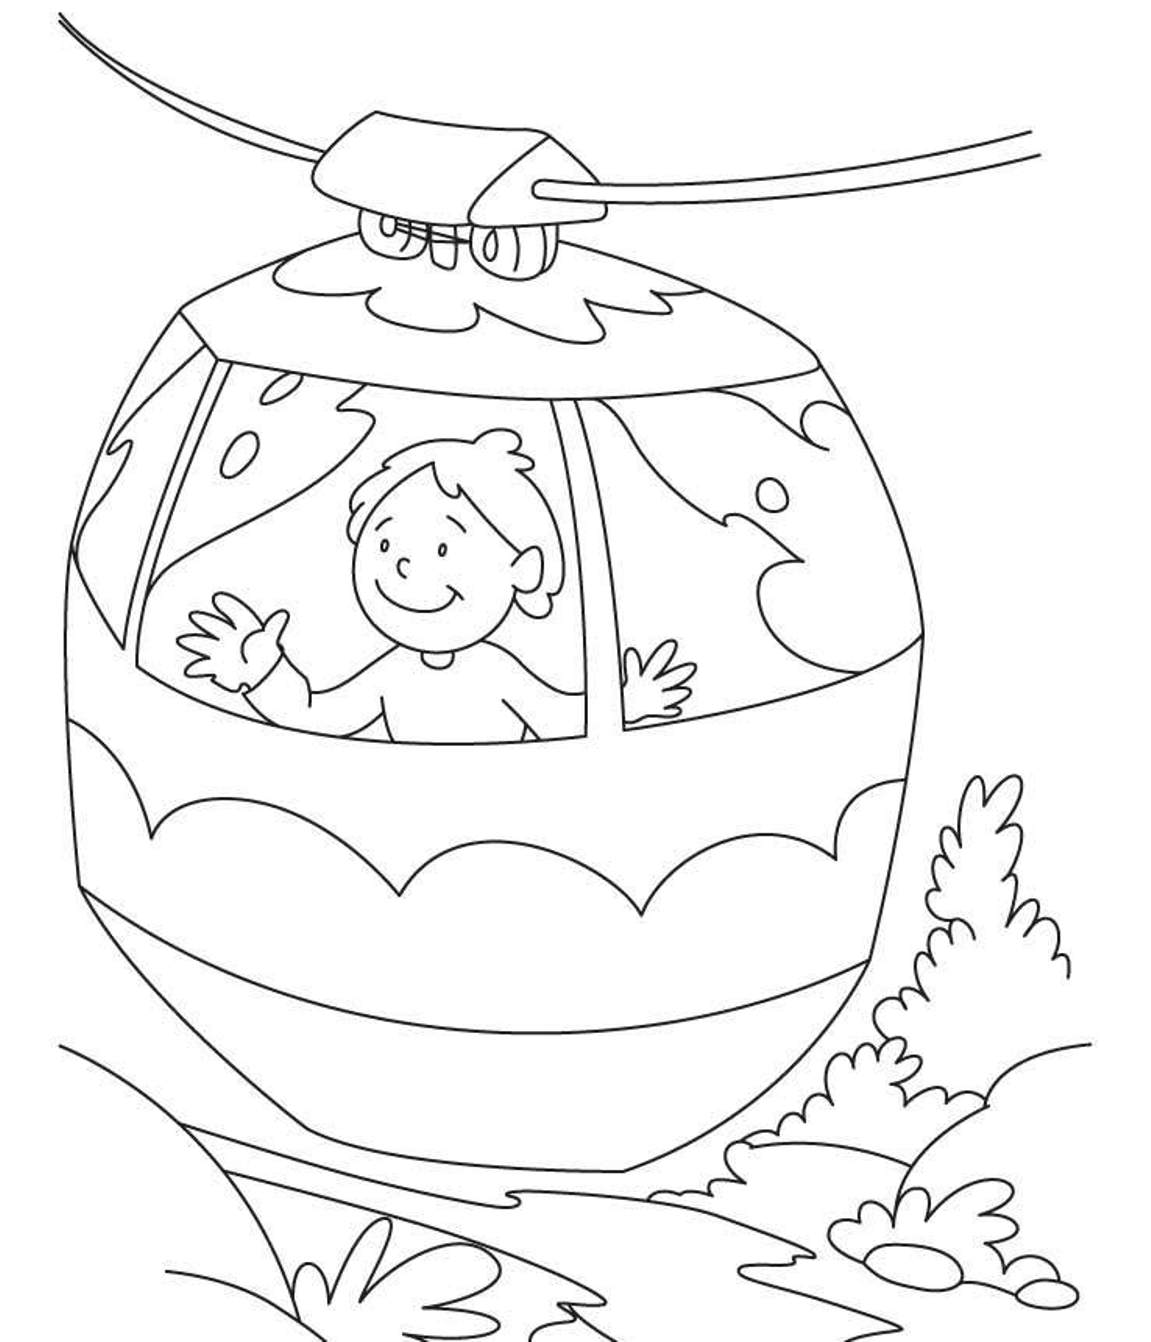 Cable Car Coloring Page.